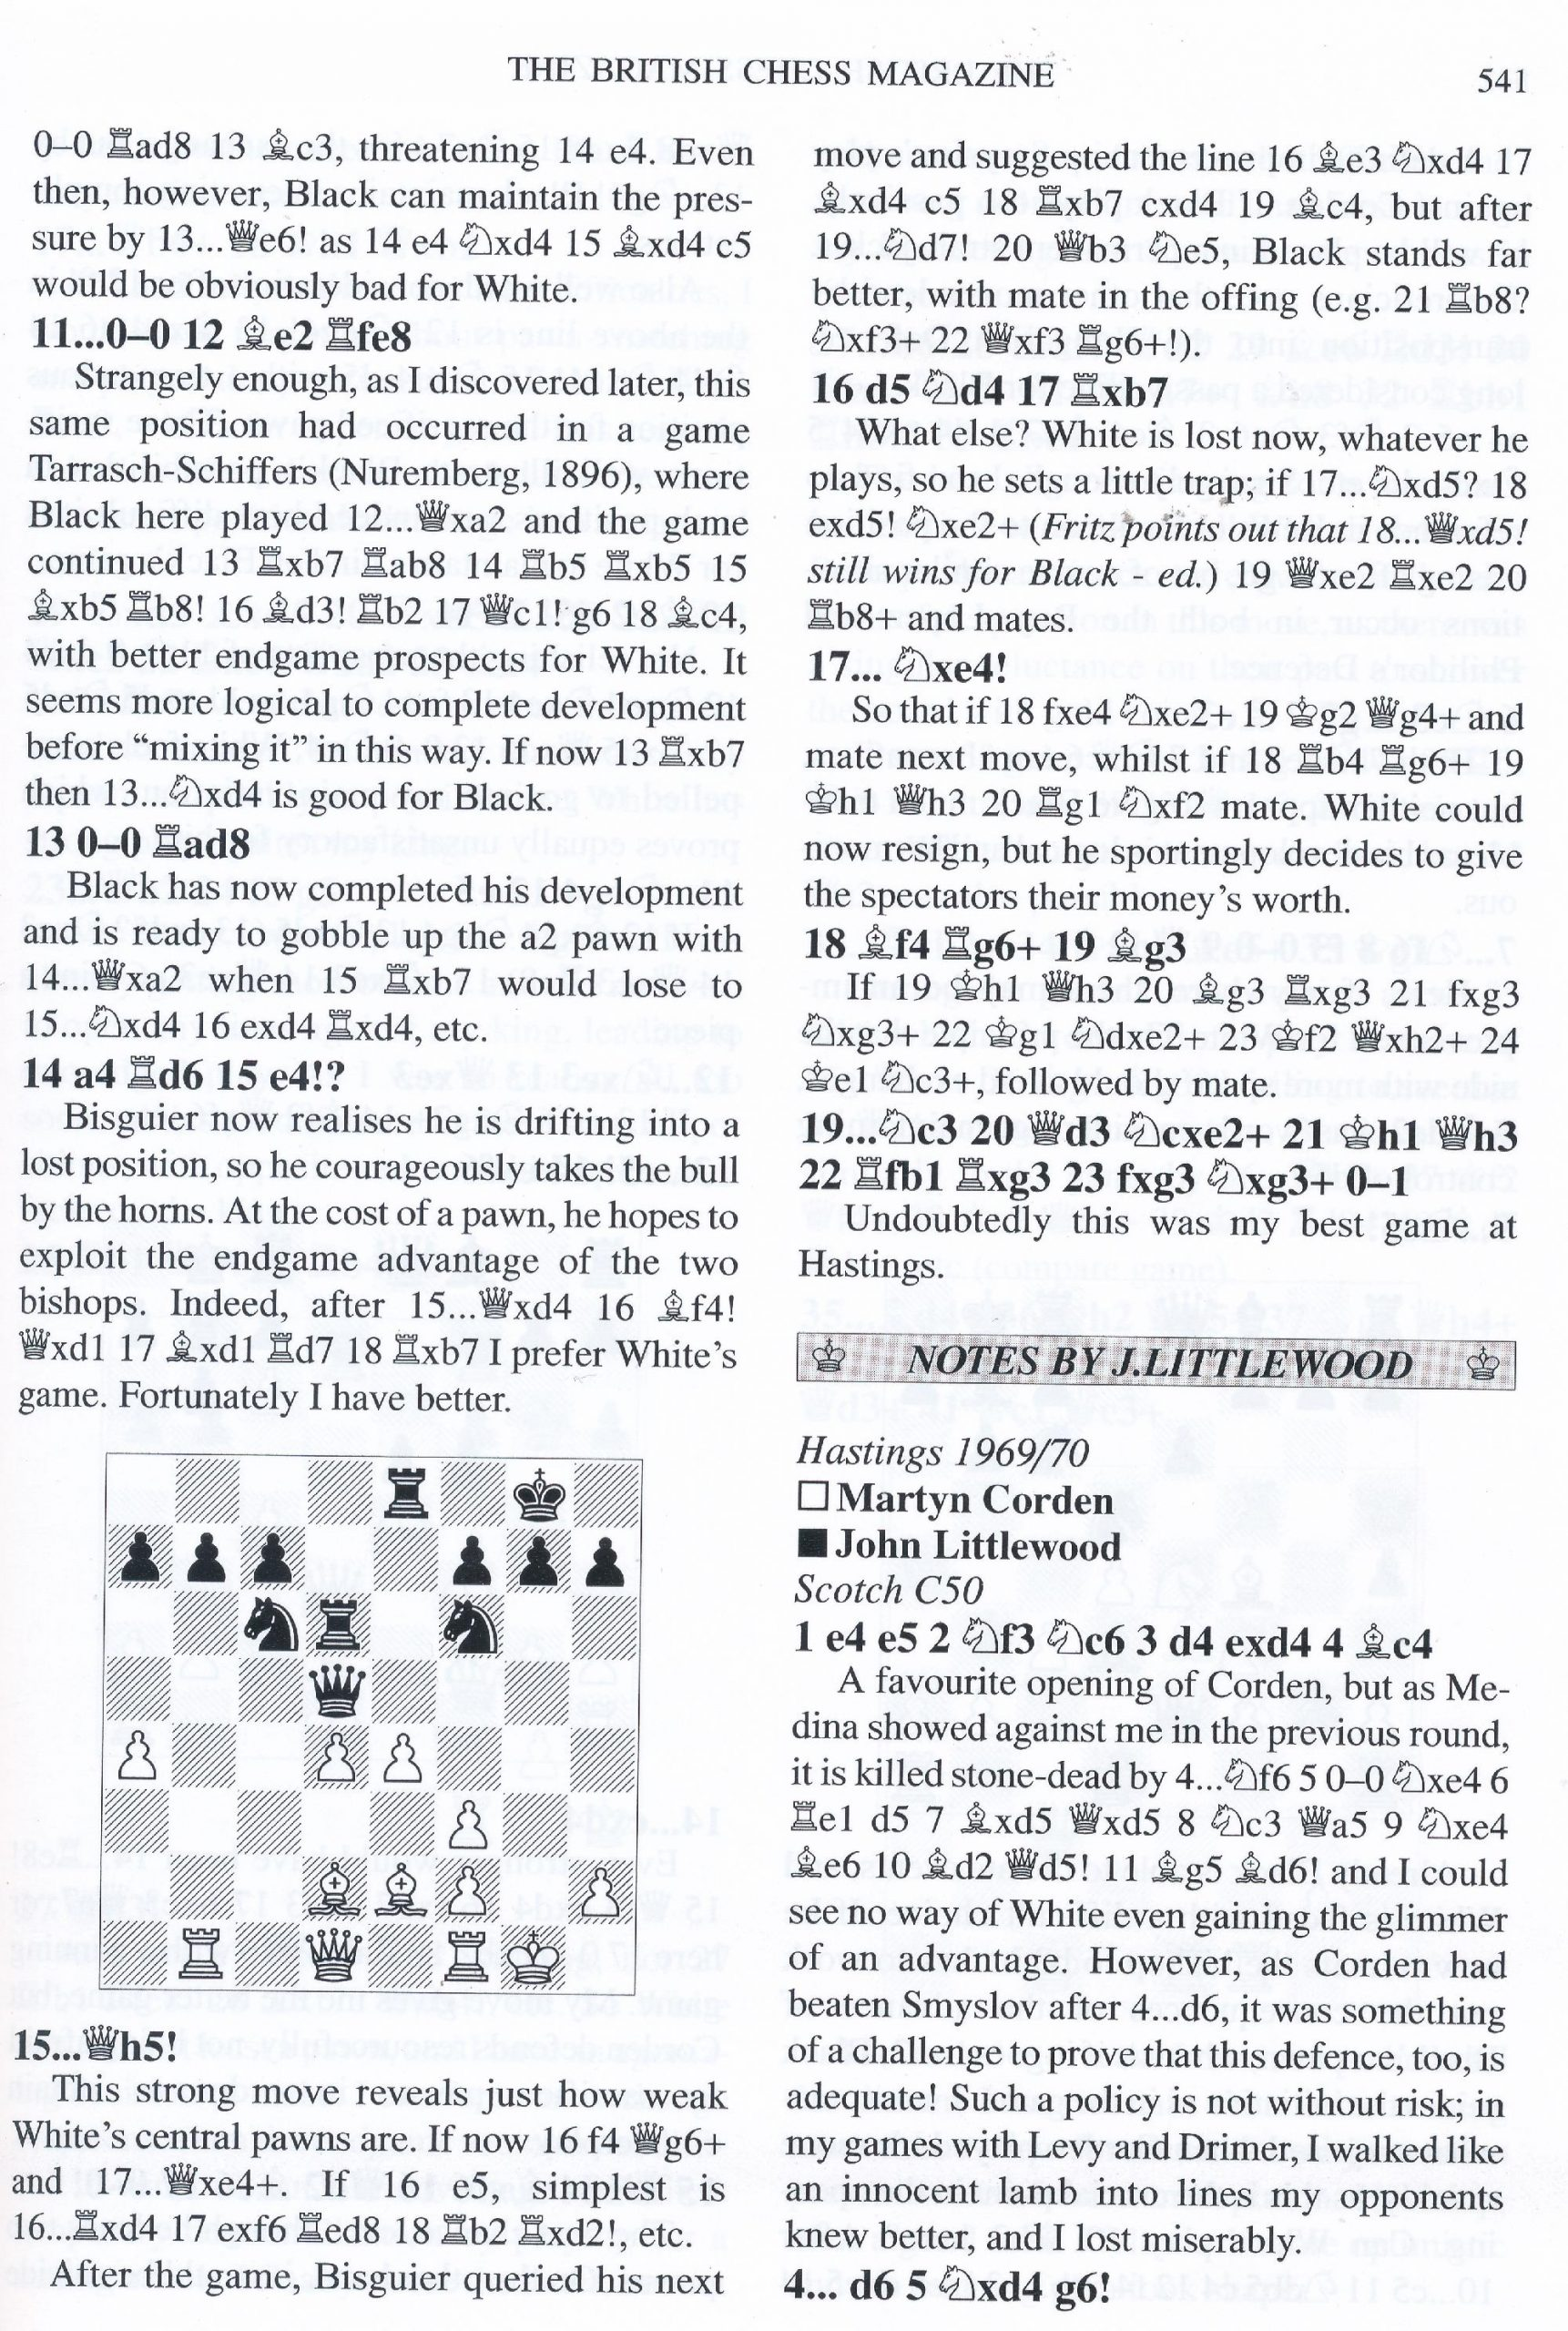 British Chess Magazine, Volume CXXIV (129), 2009, Number 10, October, page 541